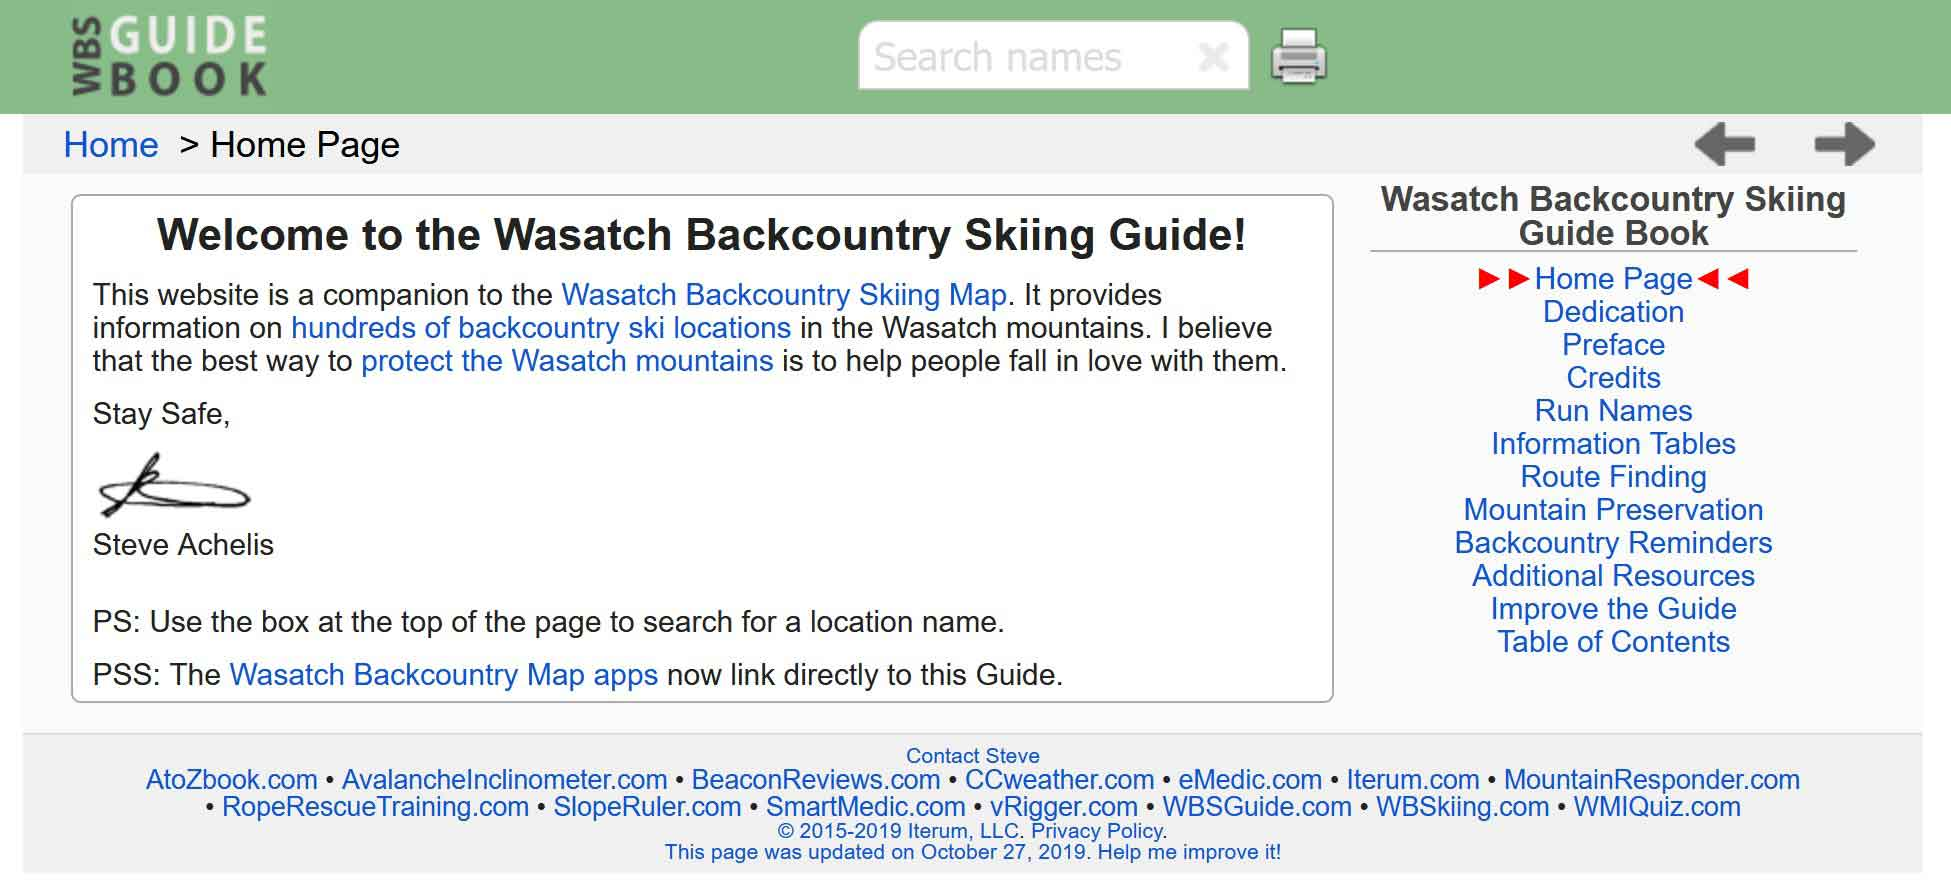 Wasatch Backcountry Guide Book - Homepage